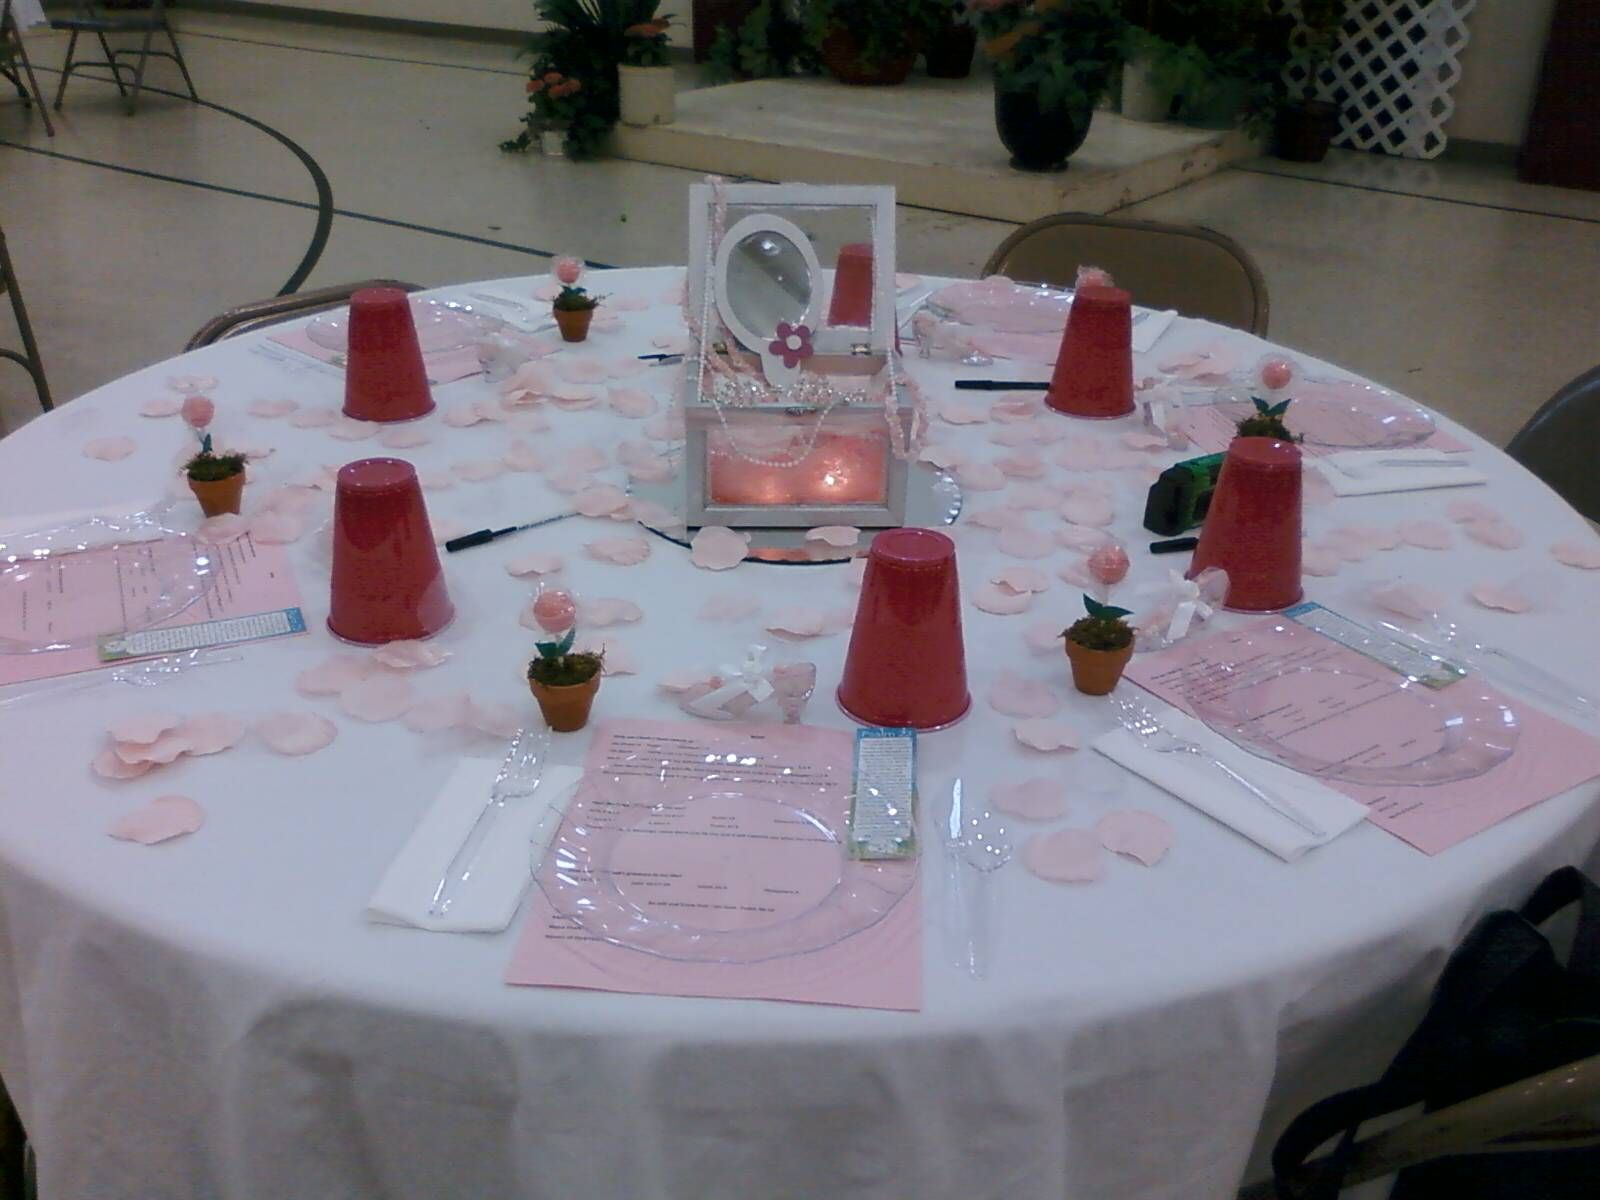 Decorated Tables Cool Centerpiece I Created And Table I Decorated For The Women's Spring Review